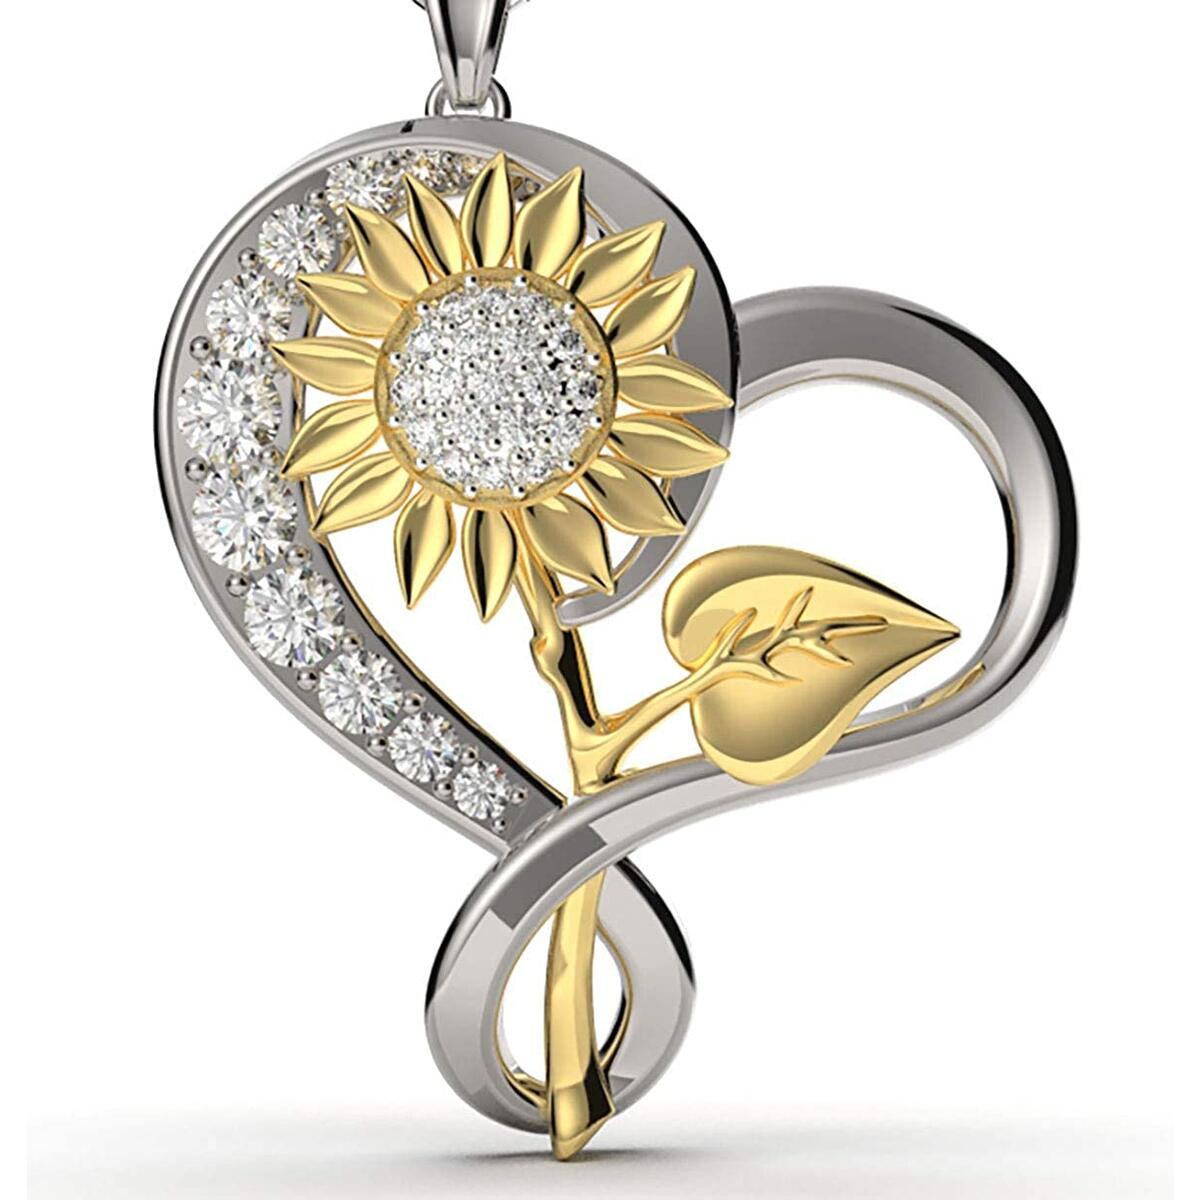 QS QUALITY SCAPE Women and Girl's Jewelry Fashion Sunflower Love Heart Pendant Necklace with Chain and Gift Box